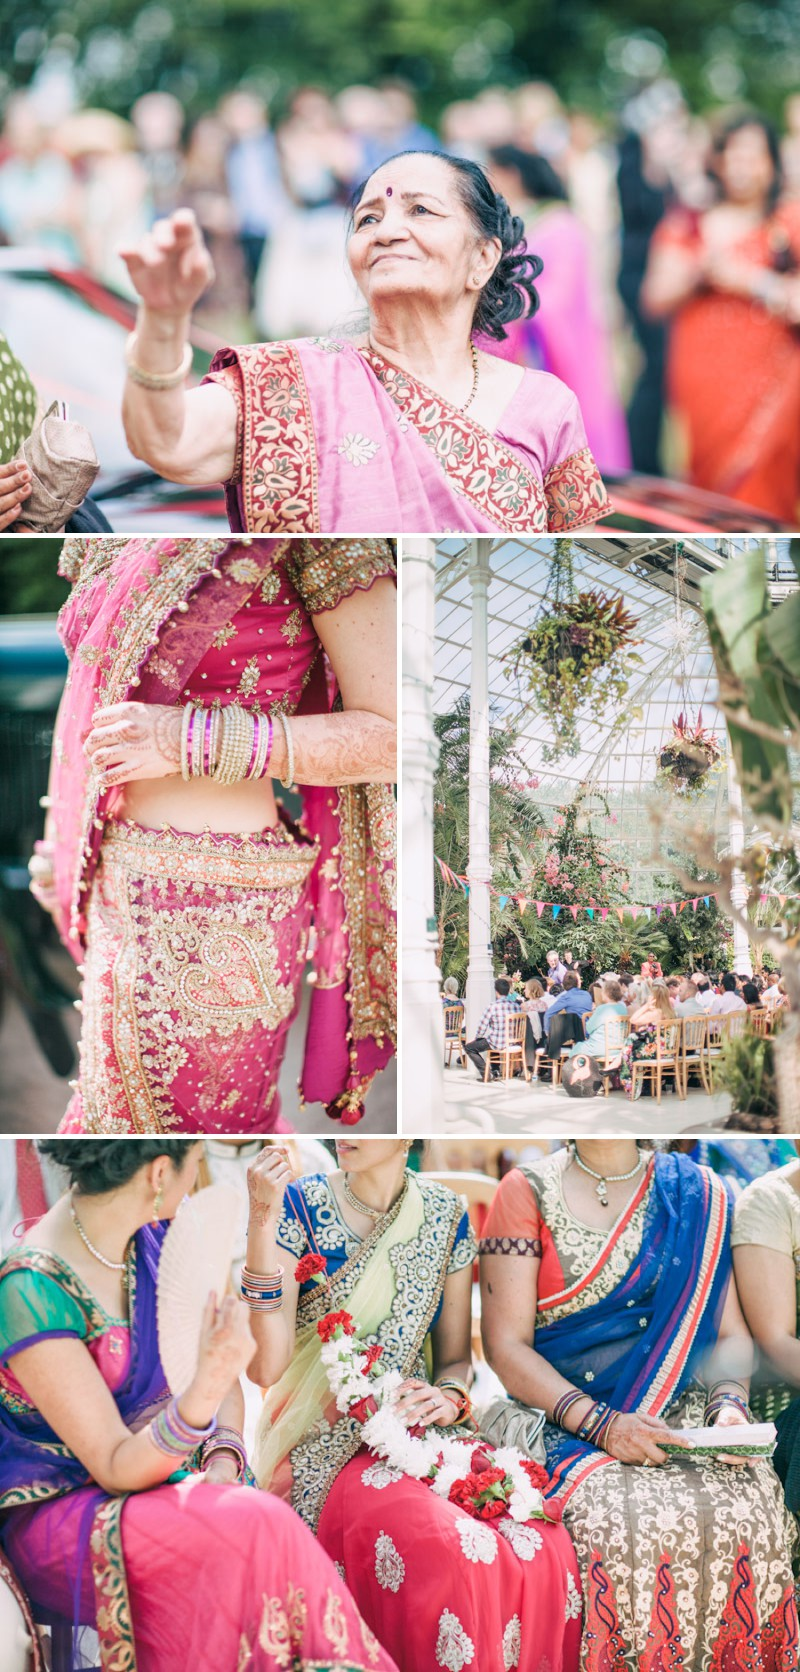 An Exotic Indian and English Fusion Wedding At Sefton Park Palm House In Liverpool With A Beautiful Vintage Lagonda And A Pink Handpicked Bouquet By Wookie Photography._0004